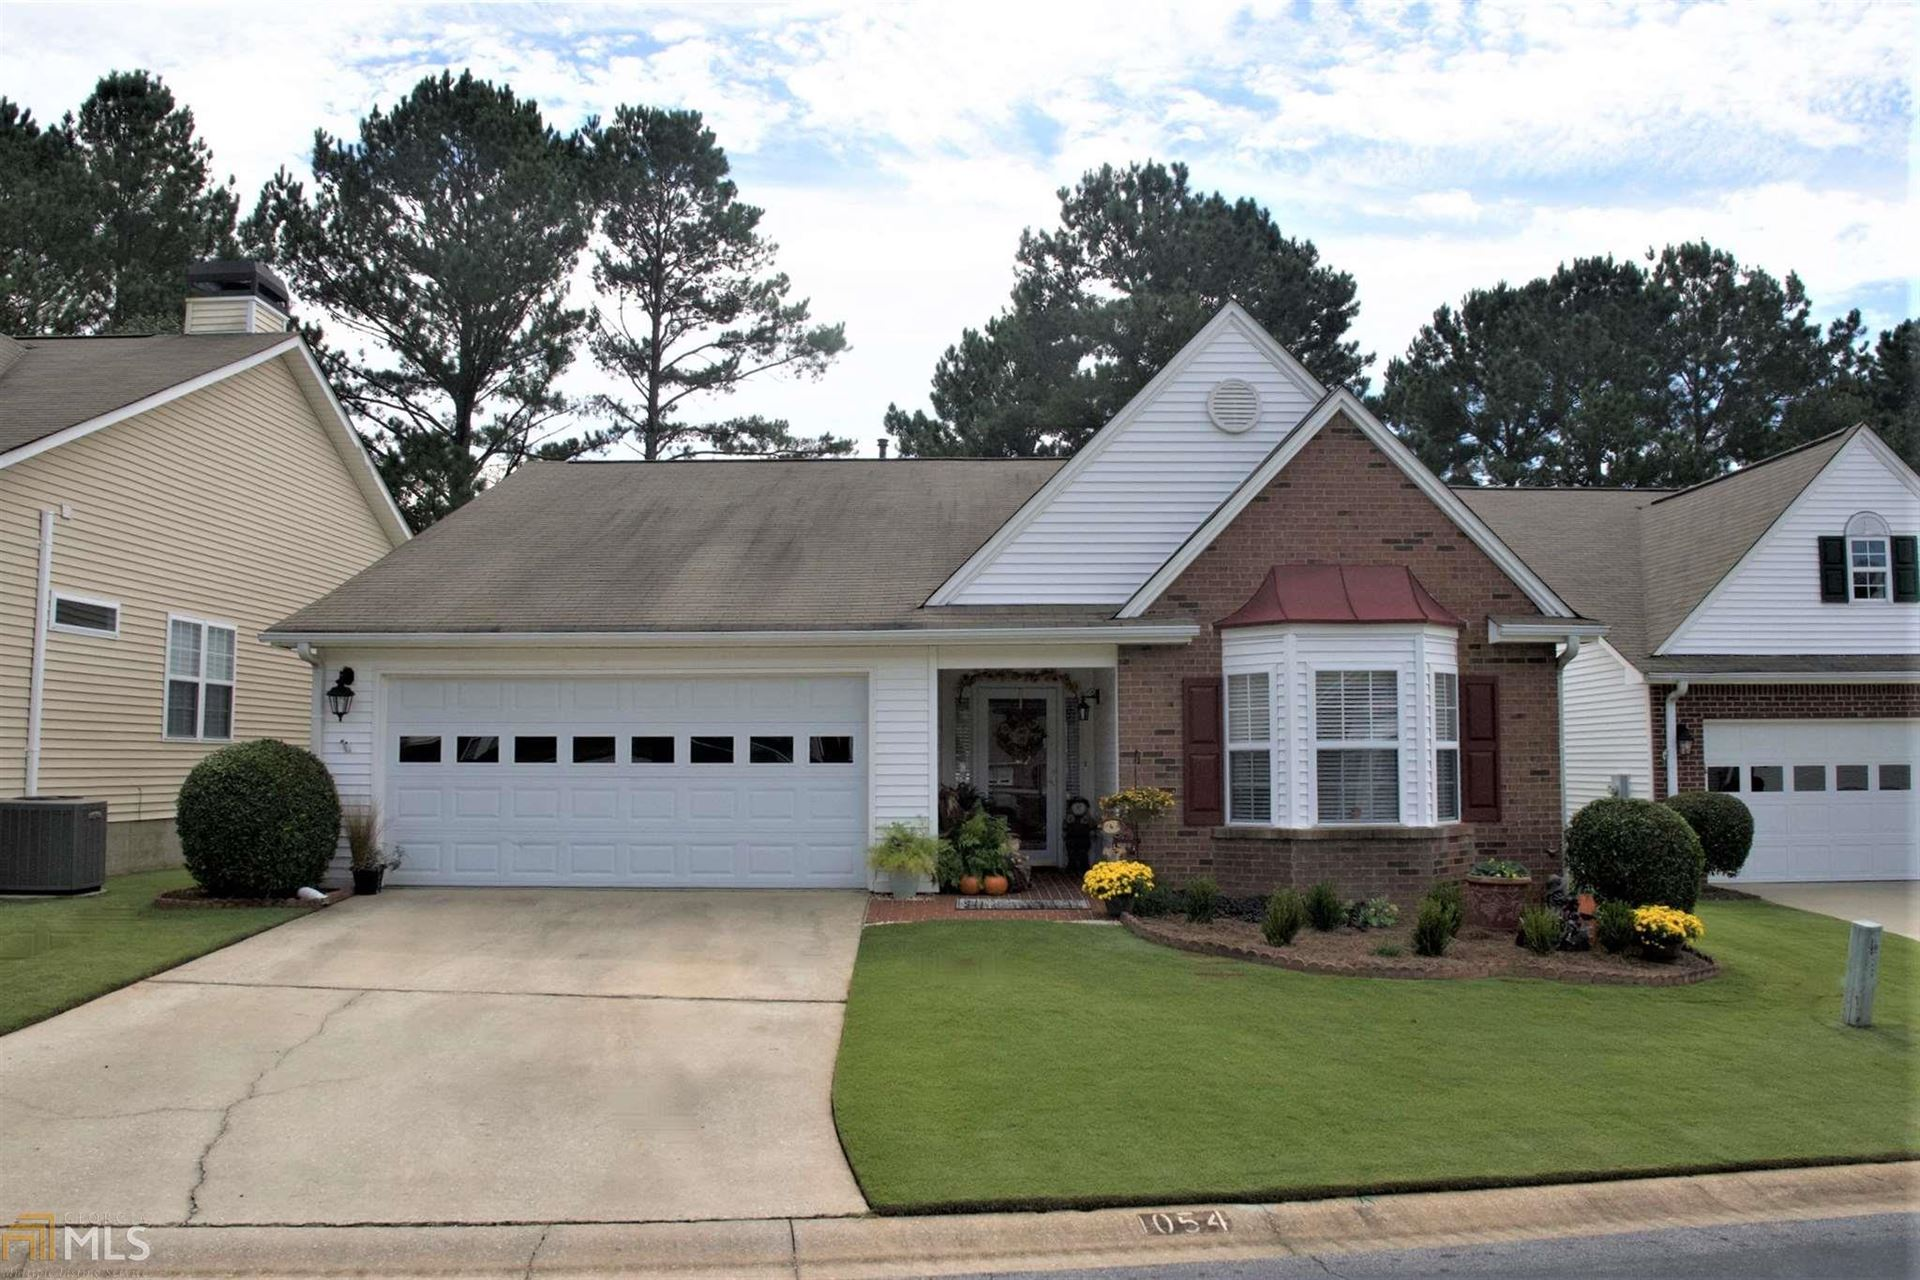 1054 Pinehurst Dr, Peachtree City, GA 30269 - #: 8871671